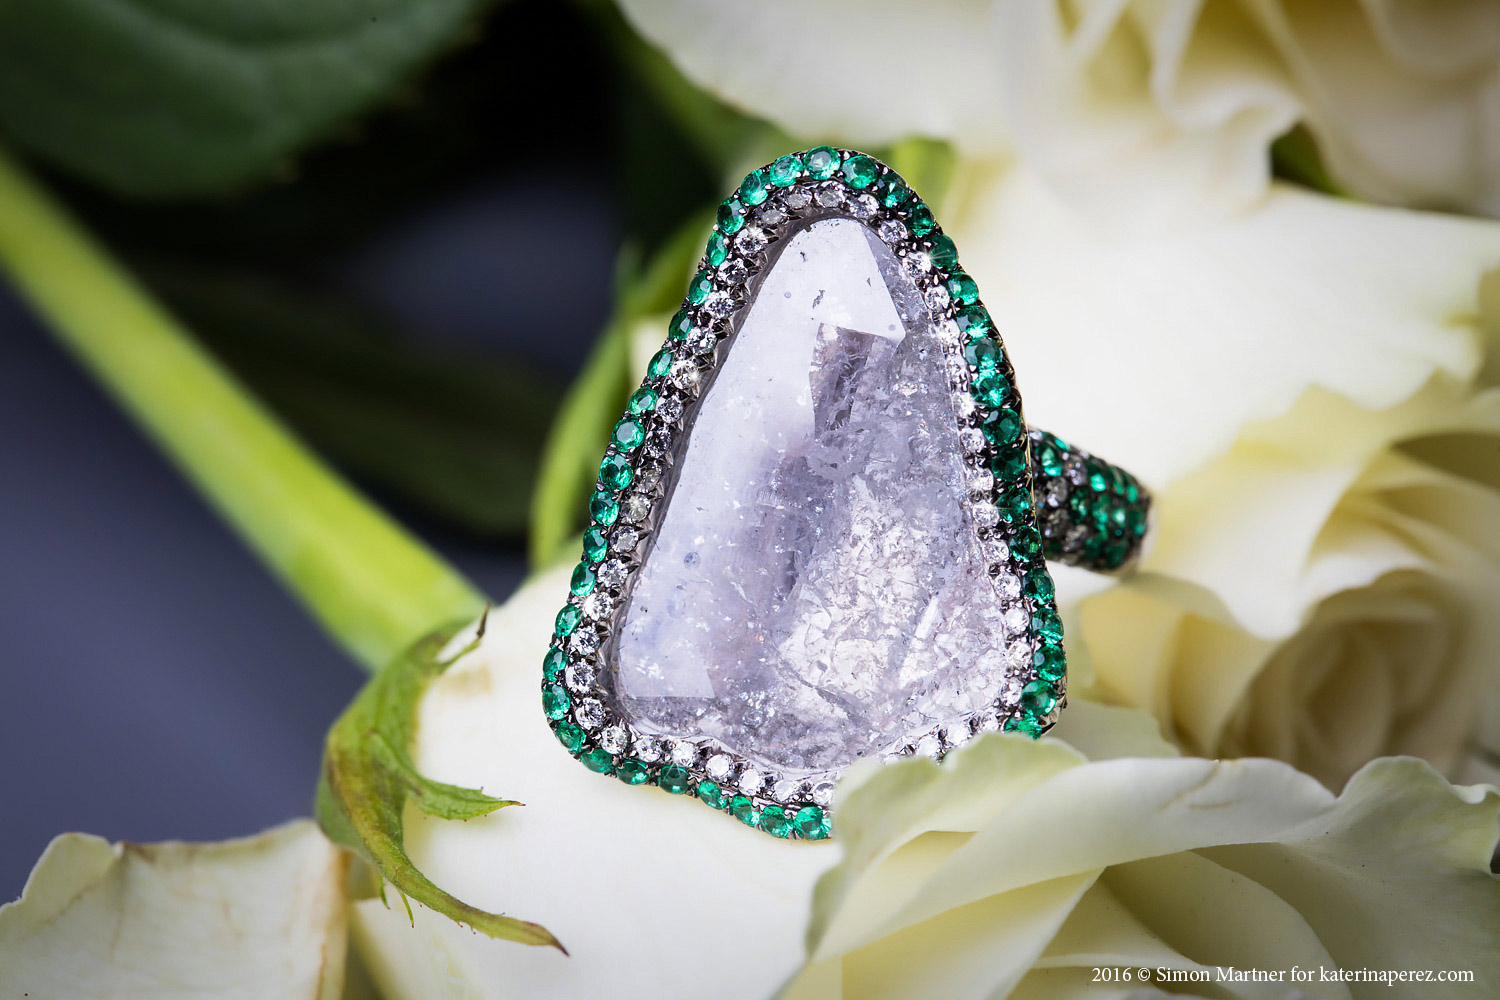 Ashu Malpani rough diamond, emeralds, diamonds in 18K white gold ring - £7,680